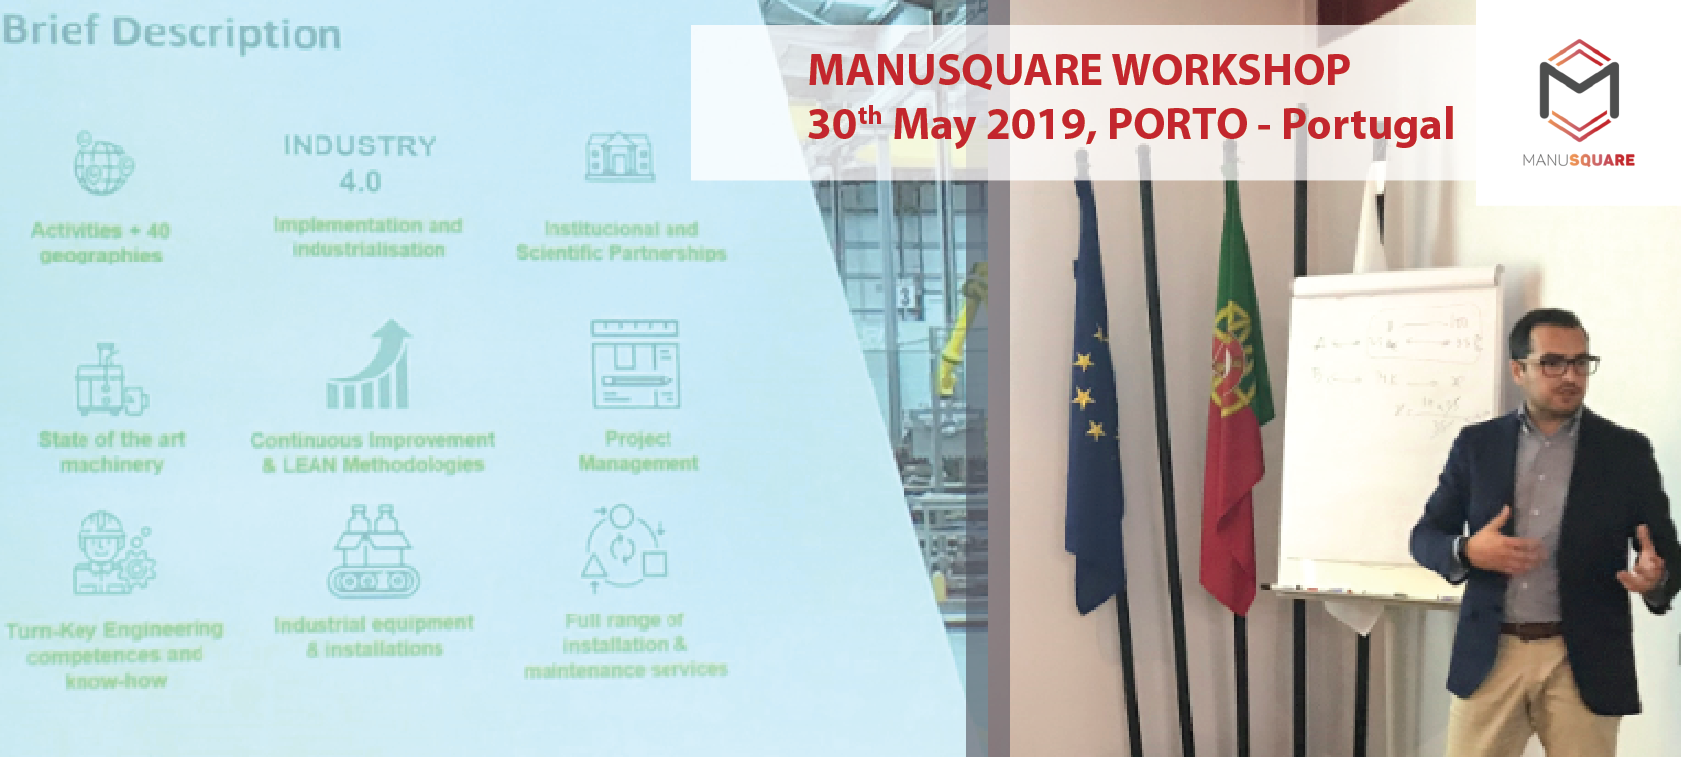 New platform for the generation of business presented in MANUSQUARE workshop